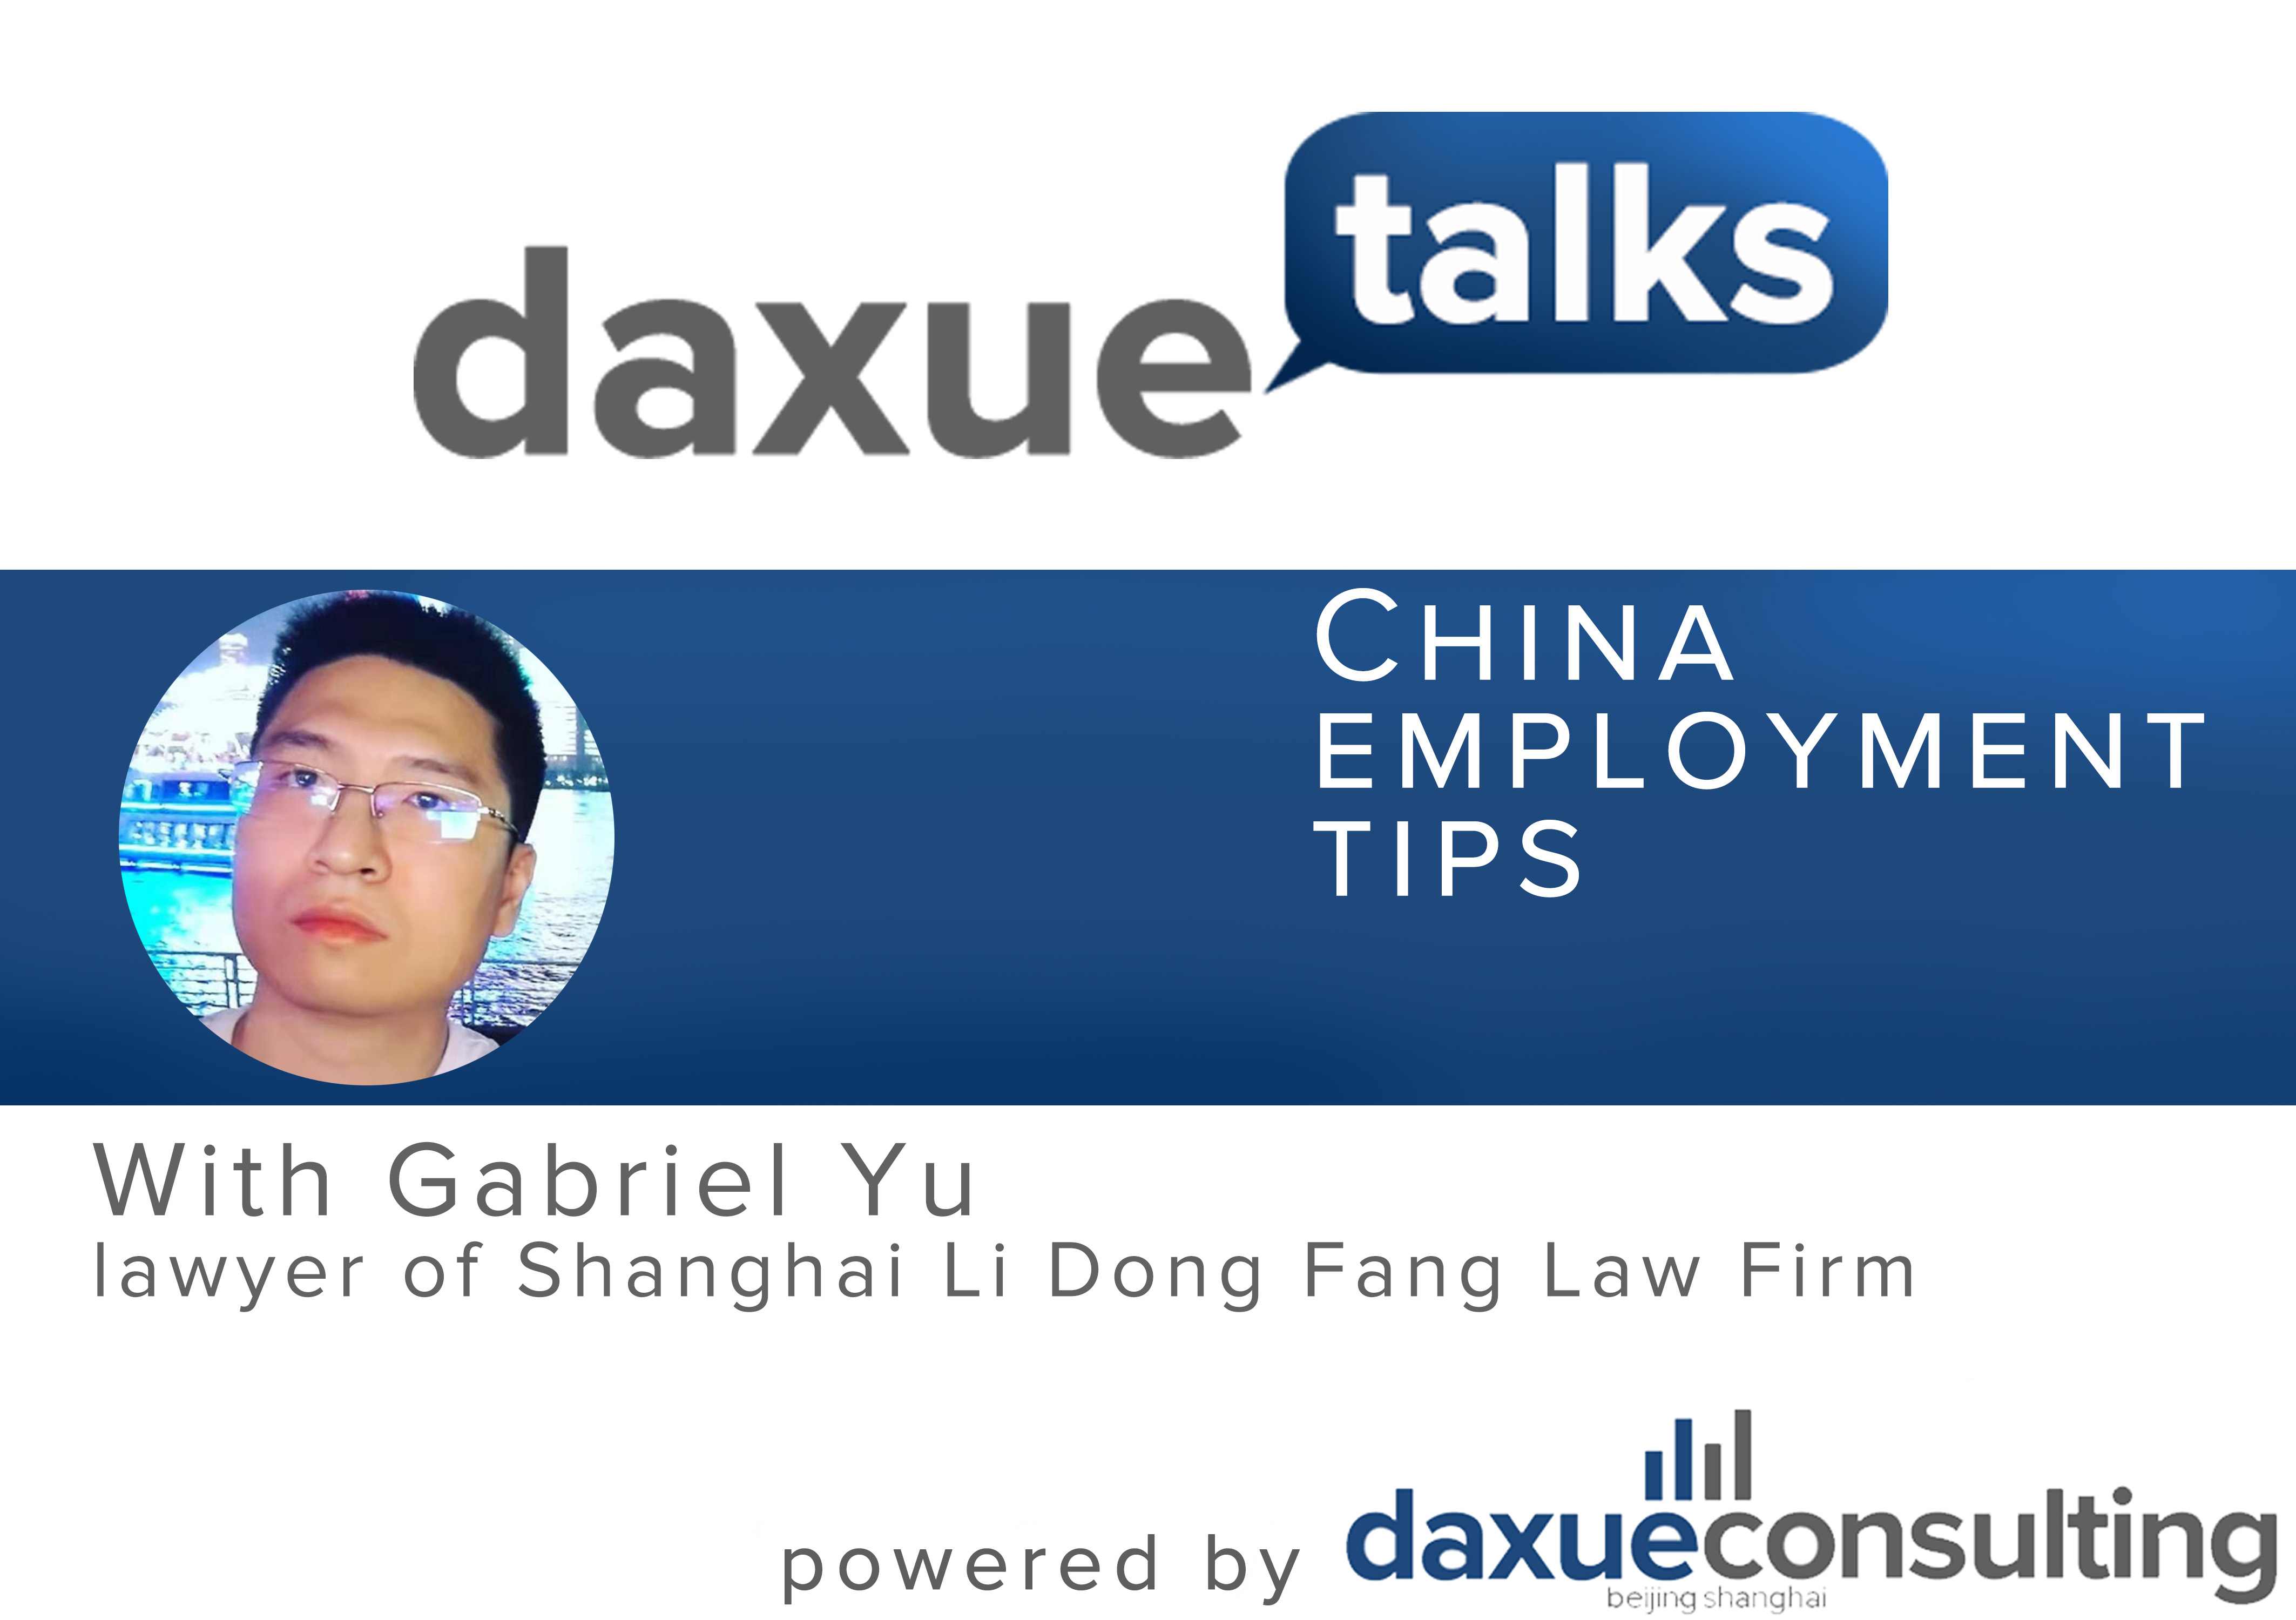 China employment tips